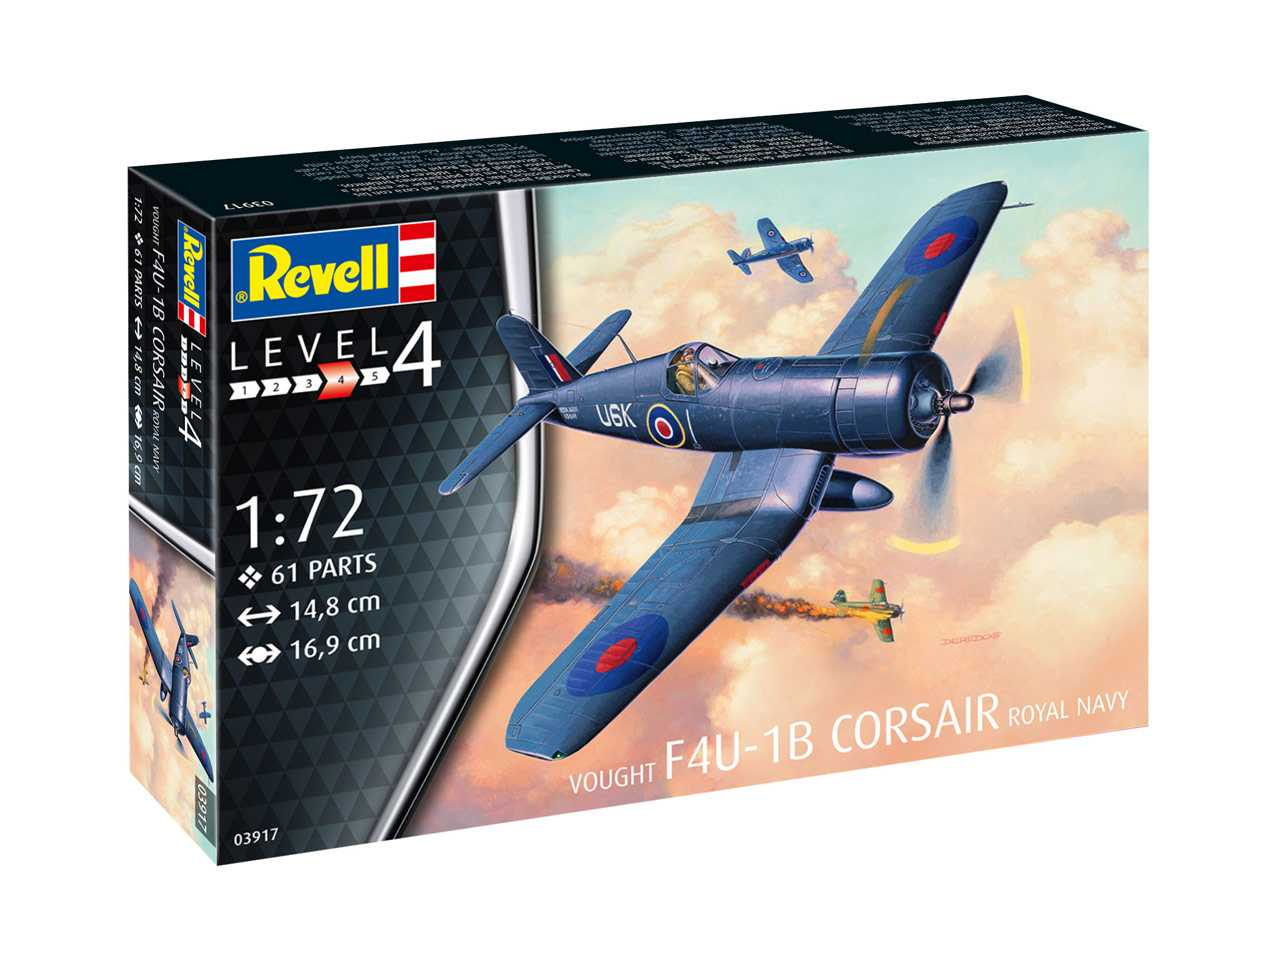 1:72 Vought F4U-1B Corsair, Royal Navy